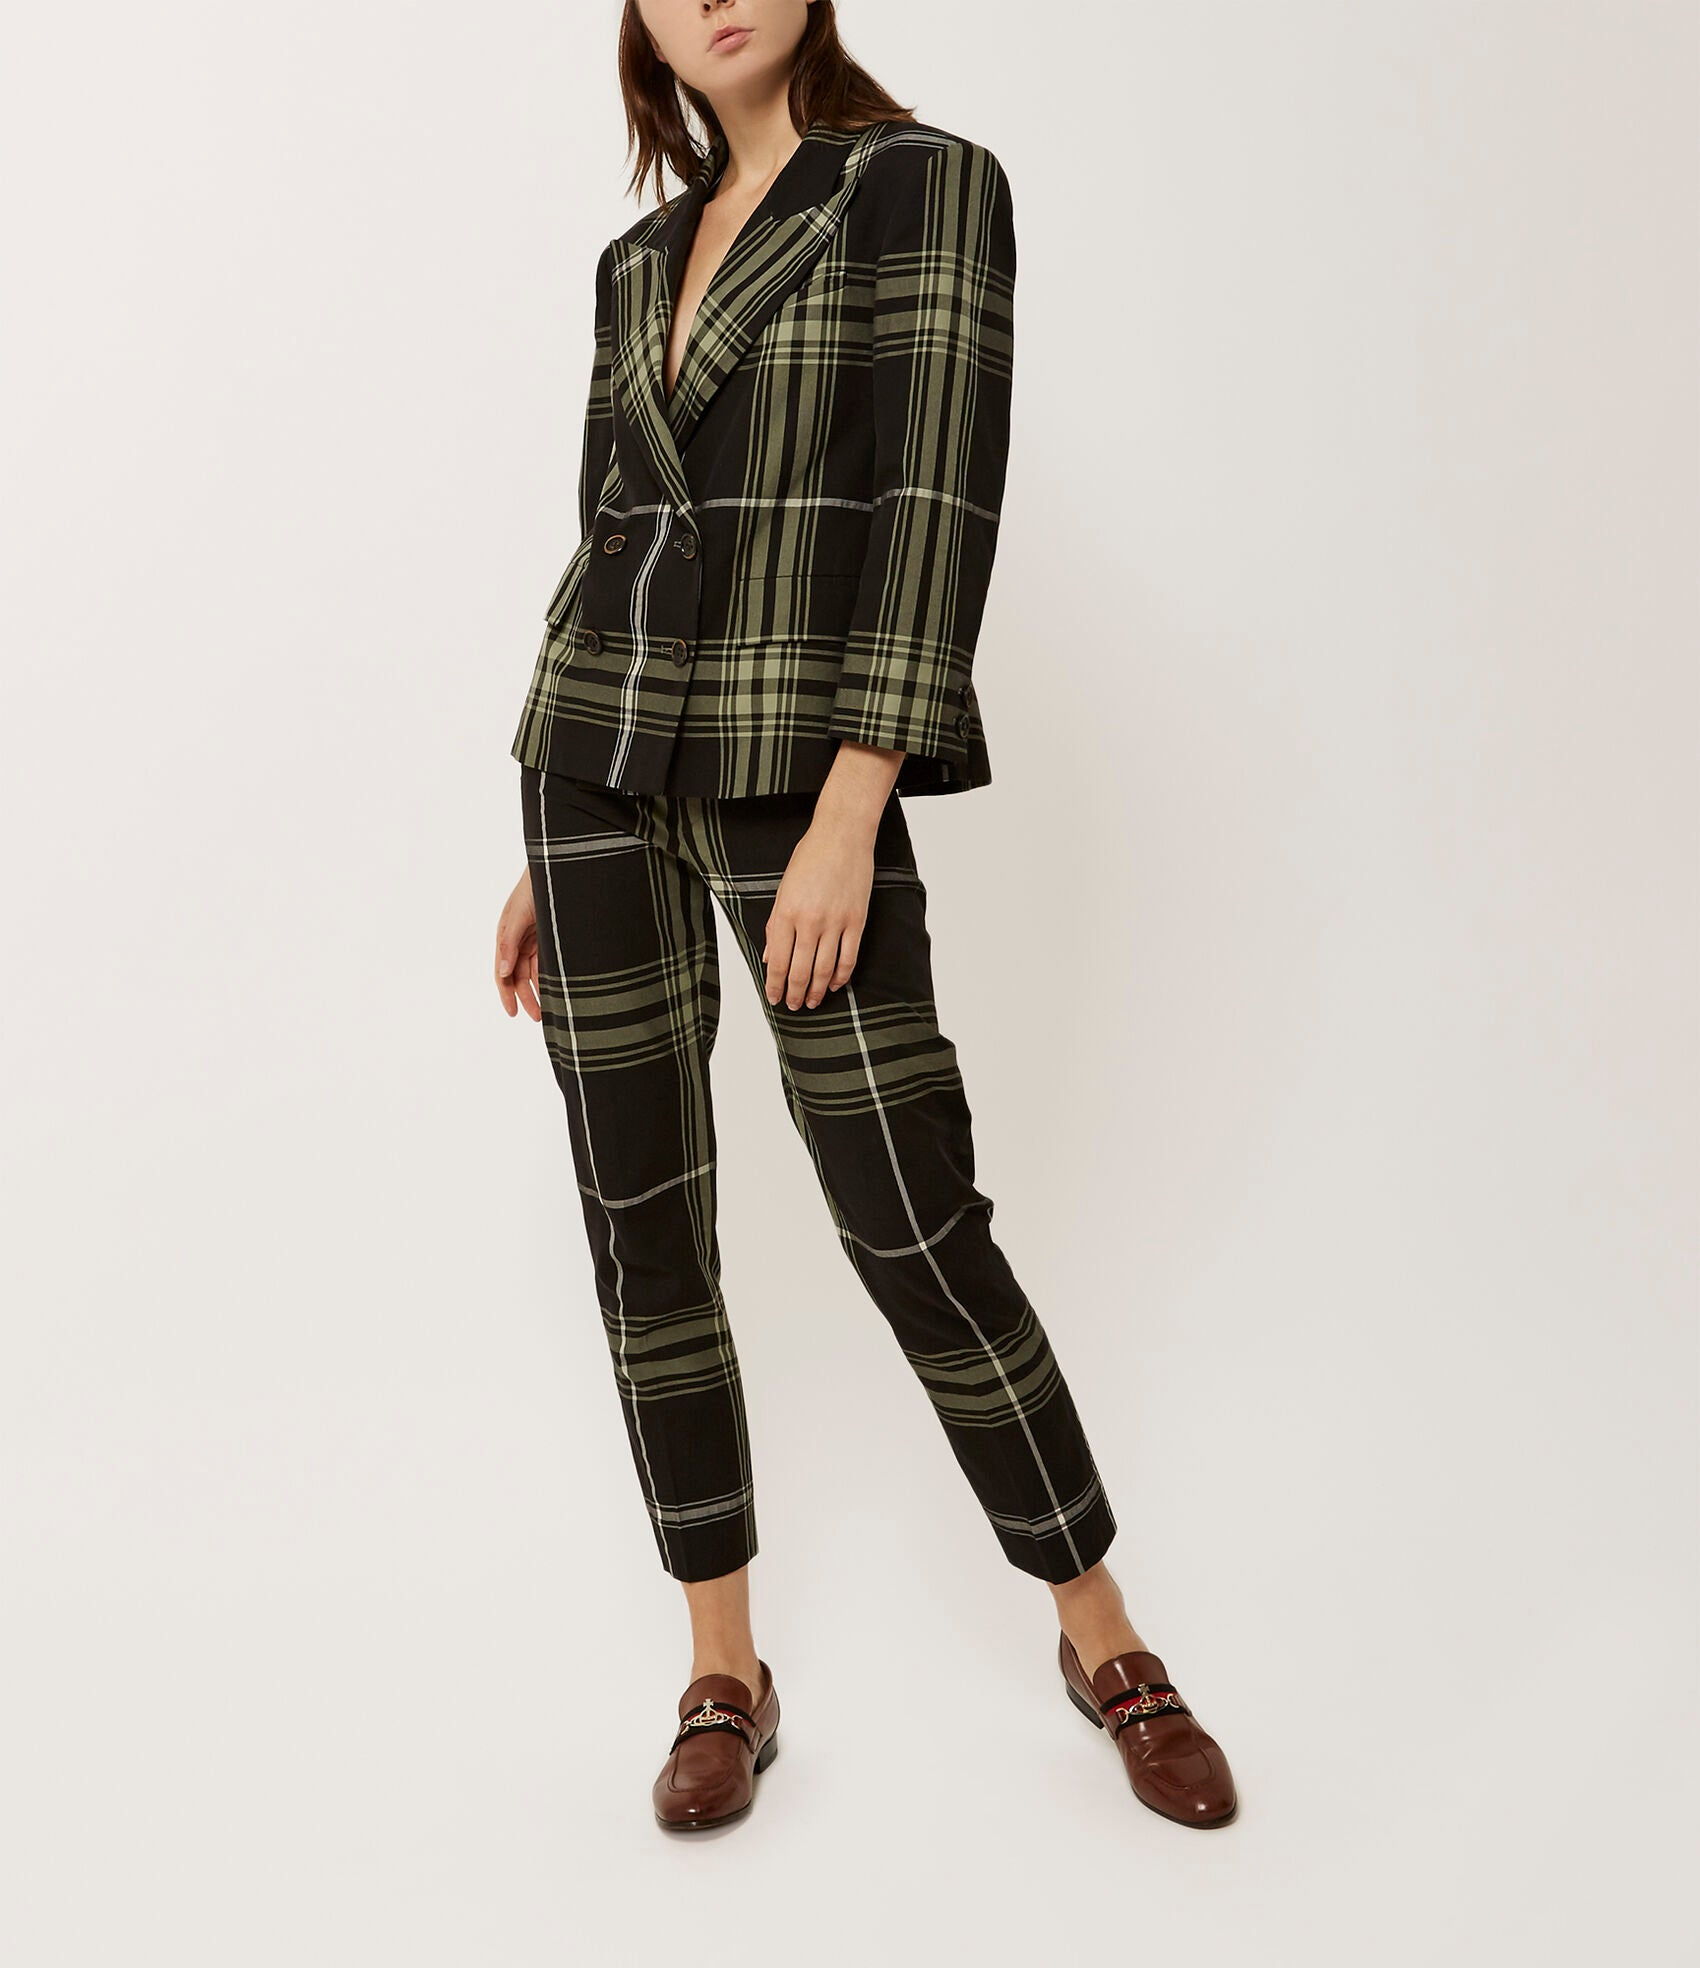 Vivienne Westwood Grand Hotel Double Breasted Tartan Jacket